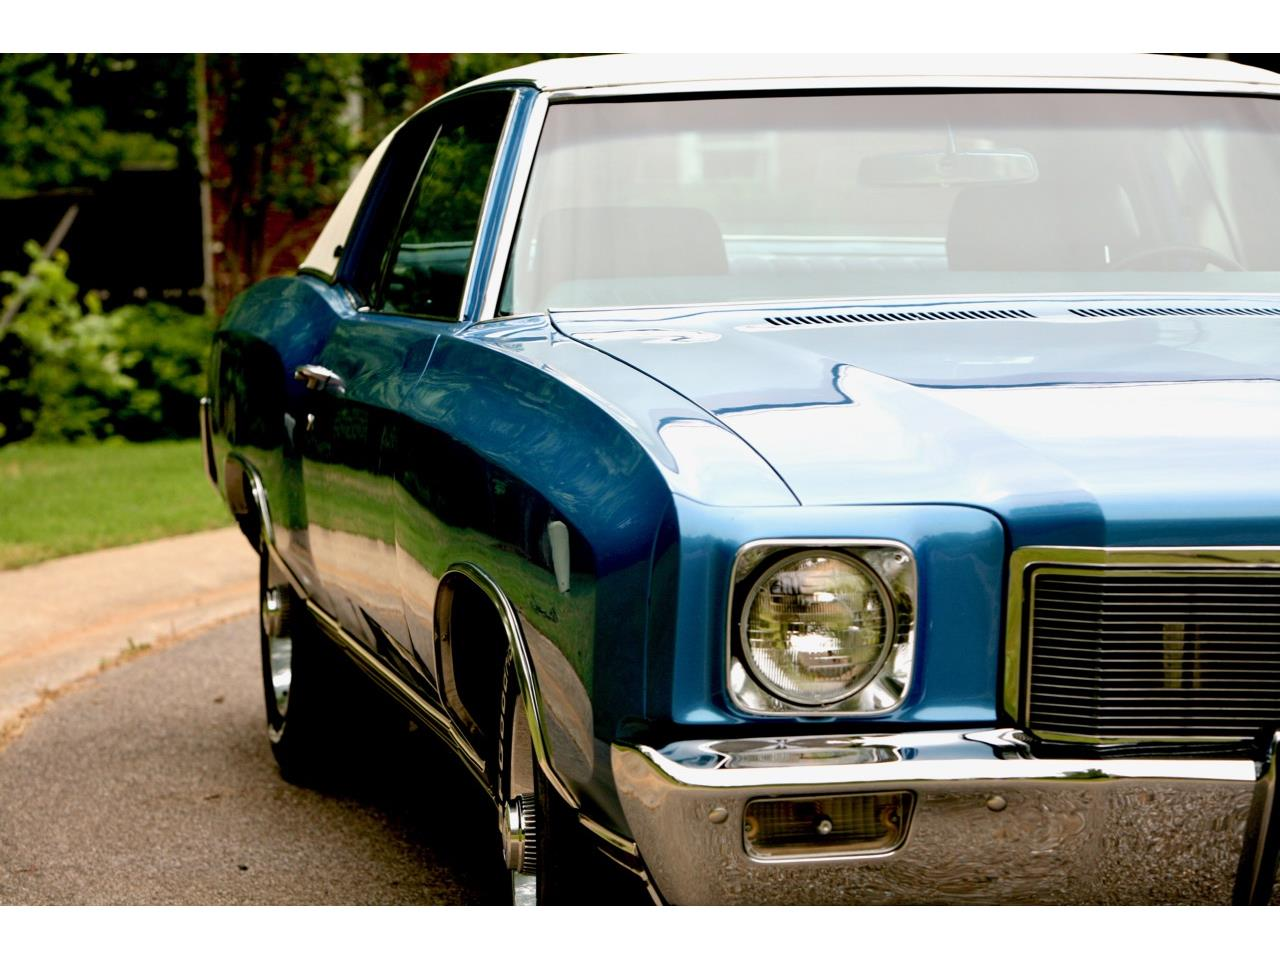 Large Picture of '71 Chevrolet Monte Carlo - $32,900.00 Offered by a Private Seller - L10H